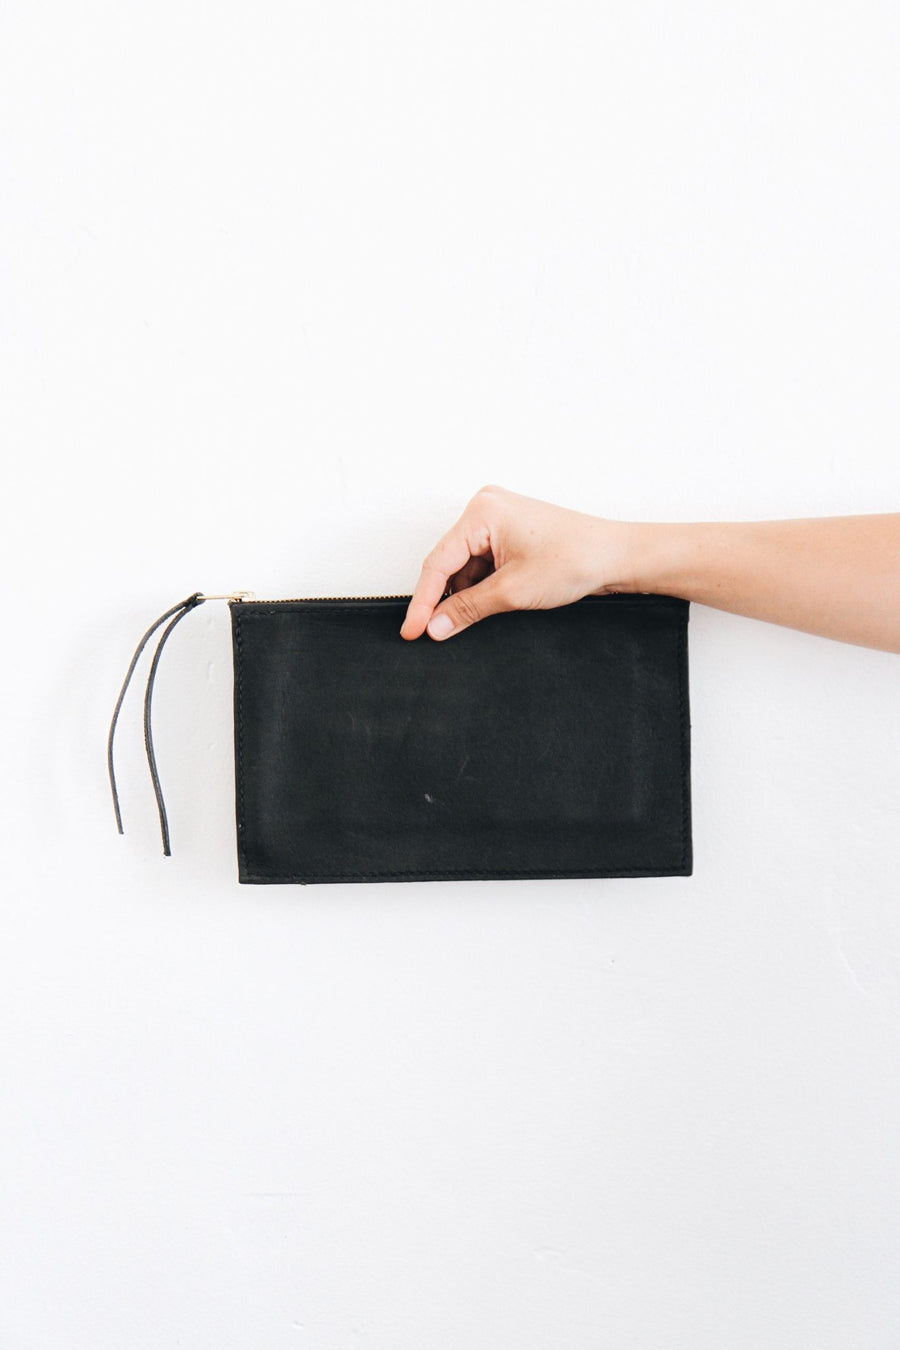 Karla Black Clutch by Tribe Alive